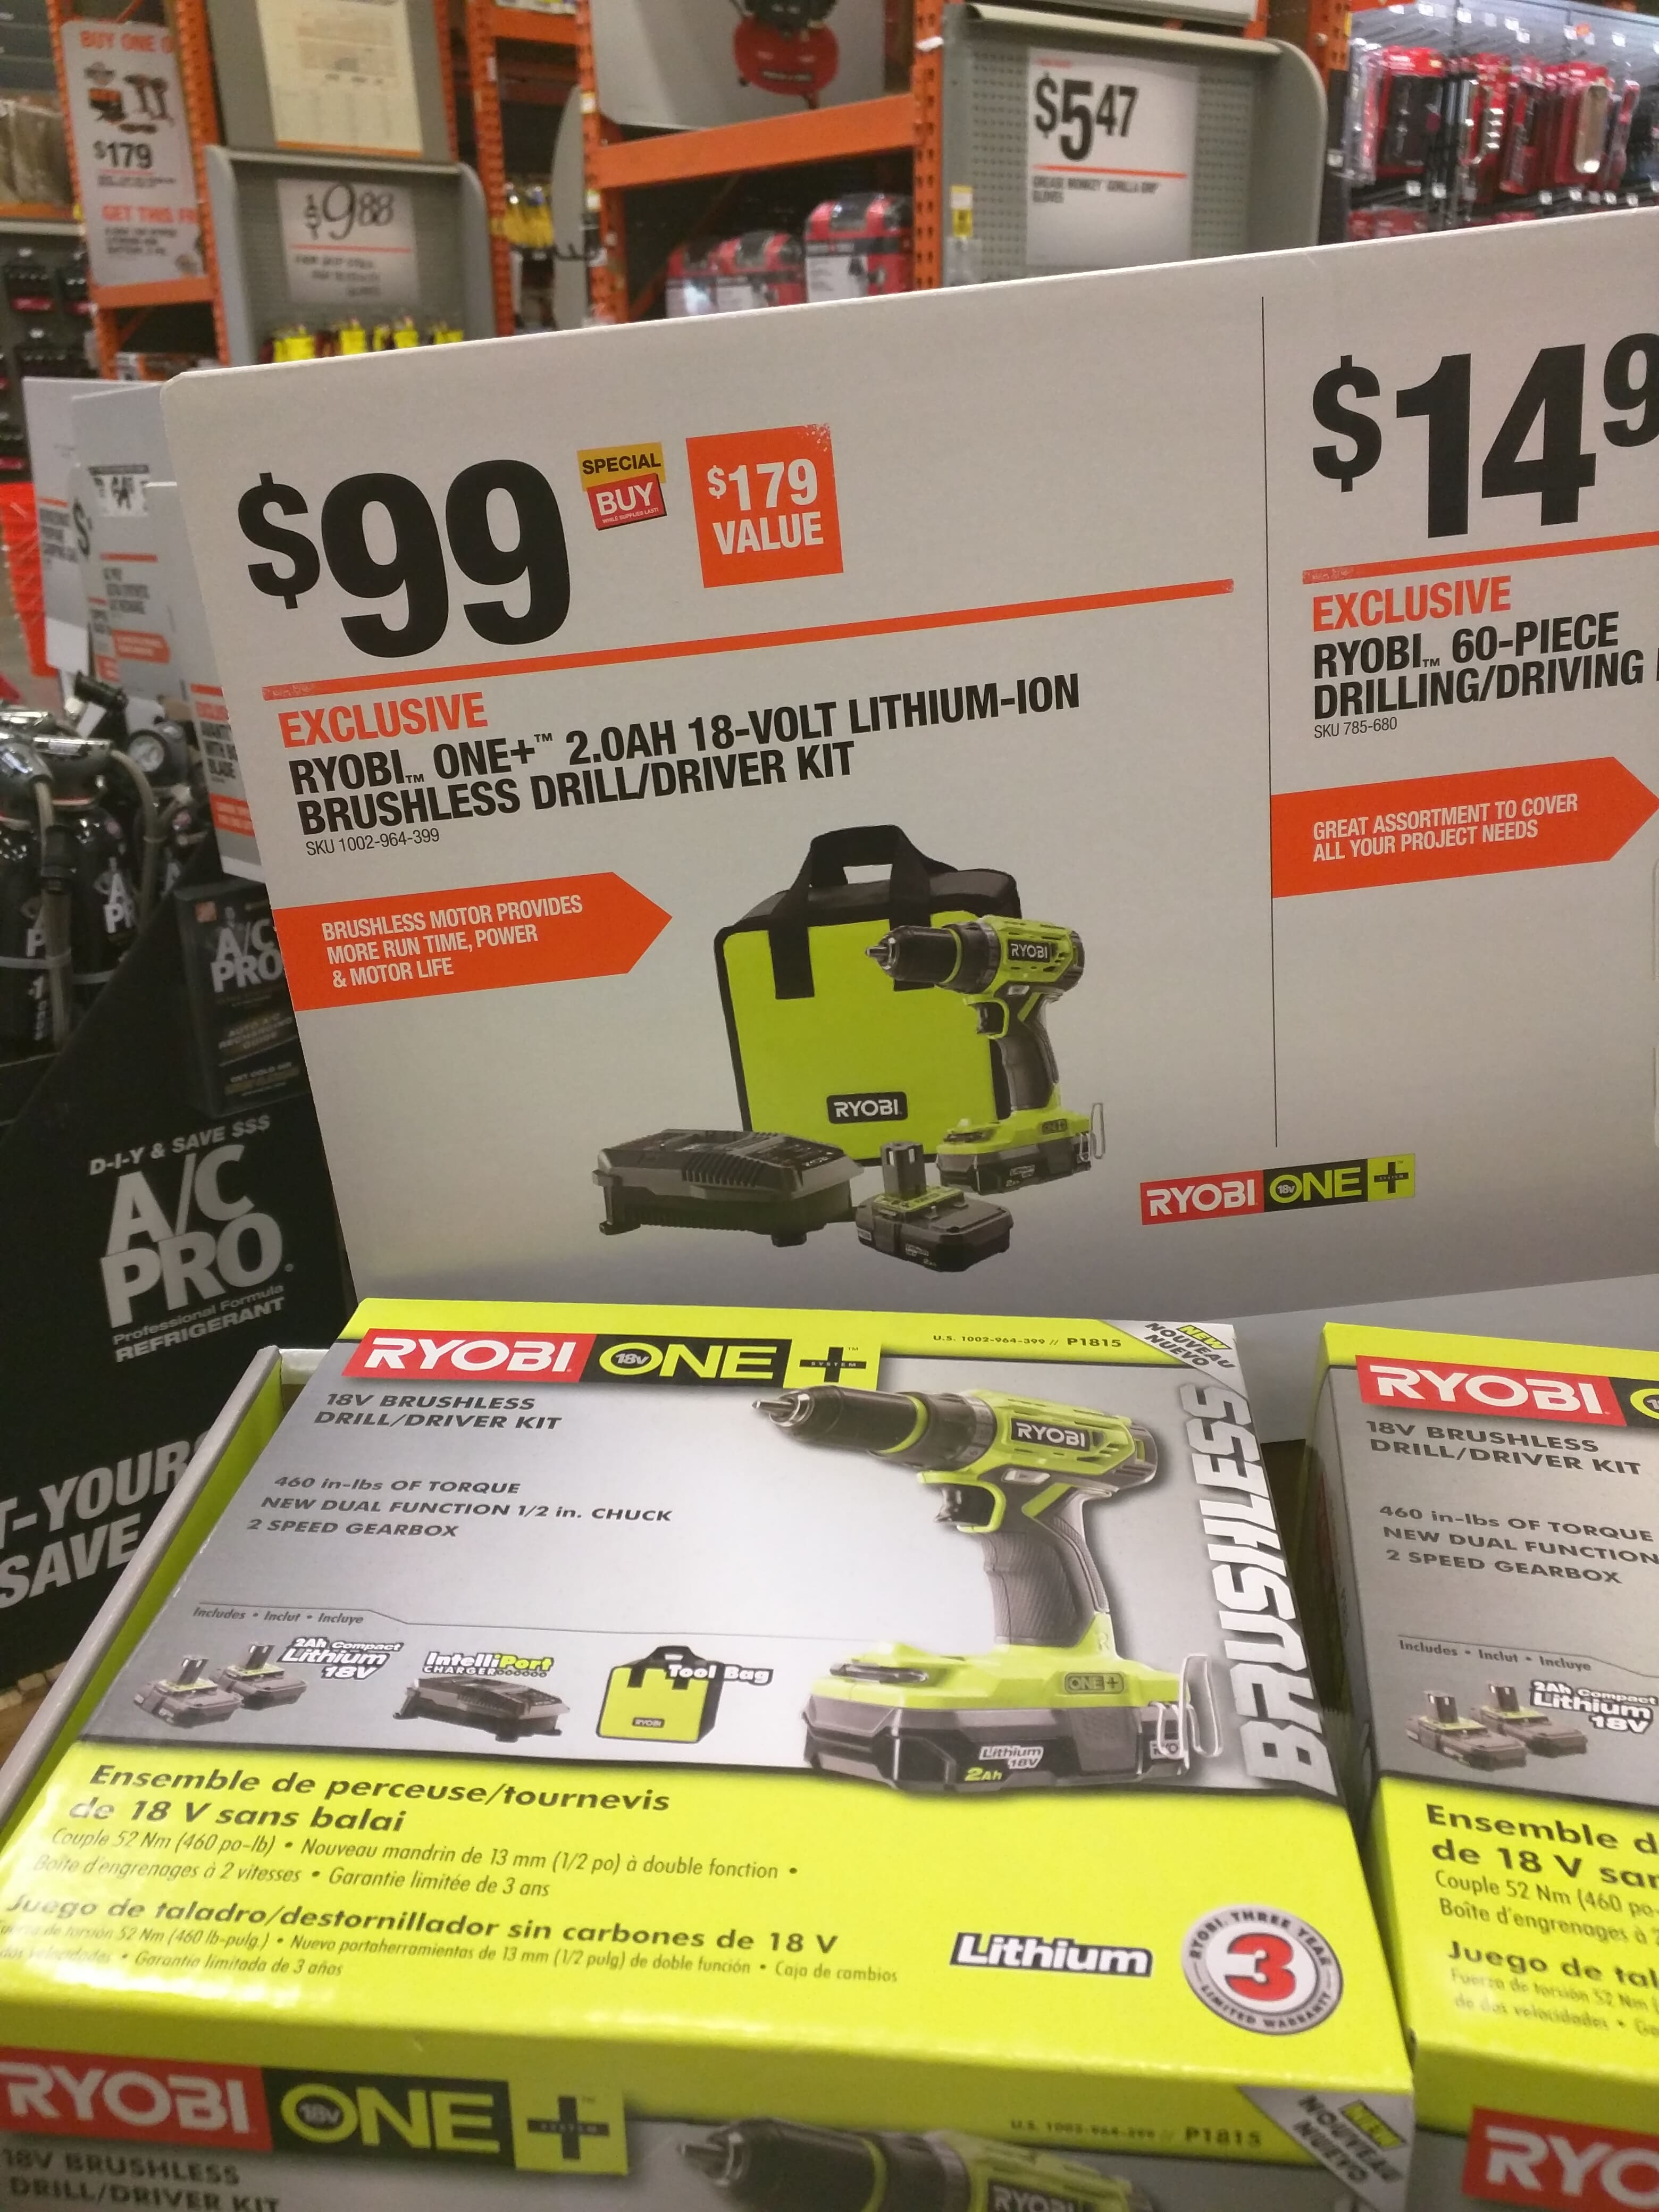 New Ryobi brushless drill in a kit $99, not the hammer drill version.